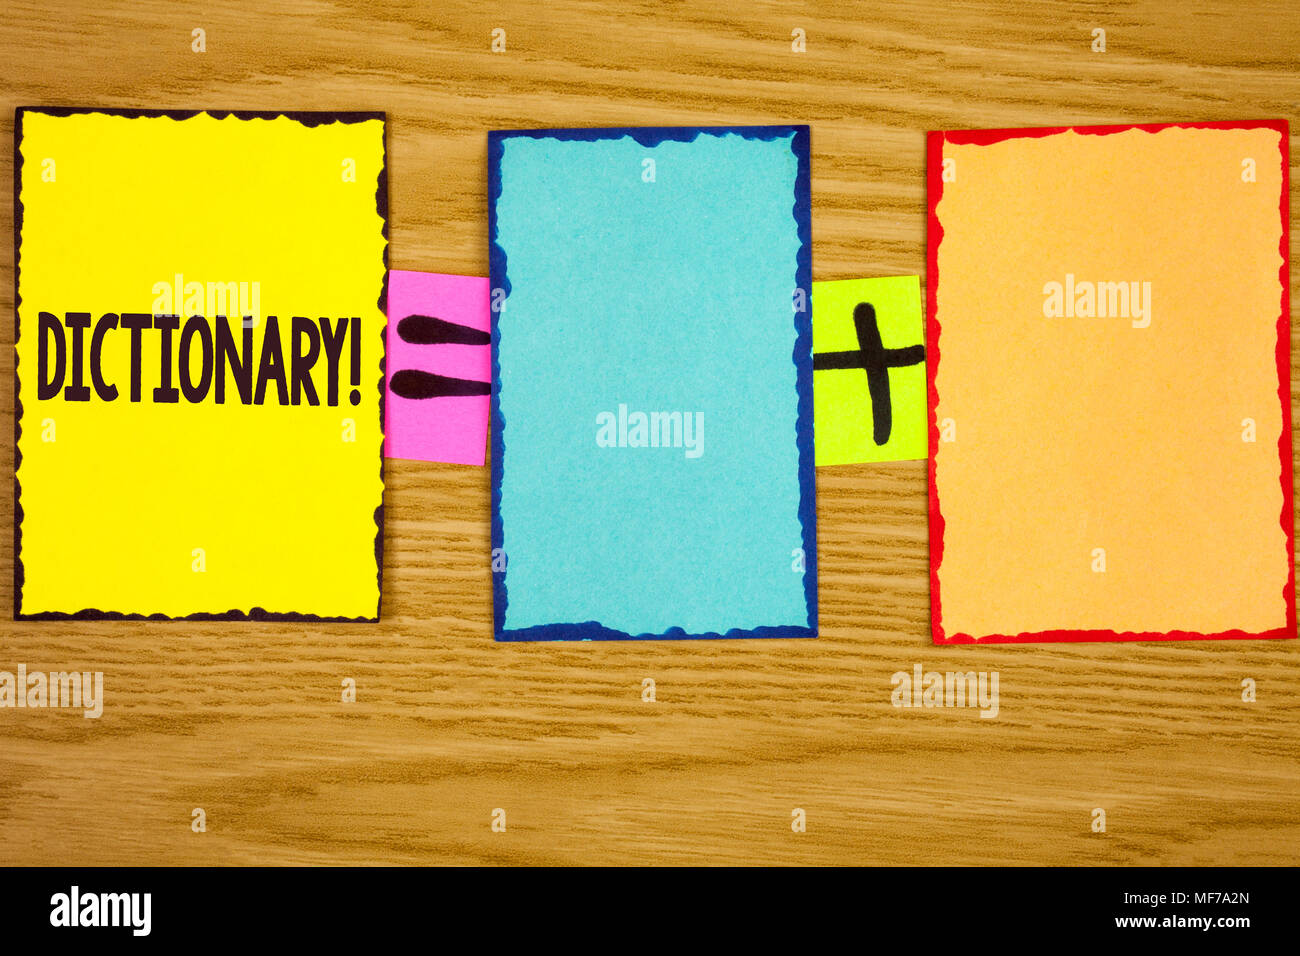 Synonym Book Stock Photos Synonym Book Stock Images Alamy - Paint synonym